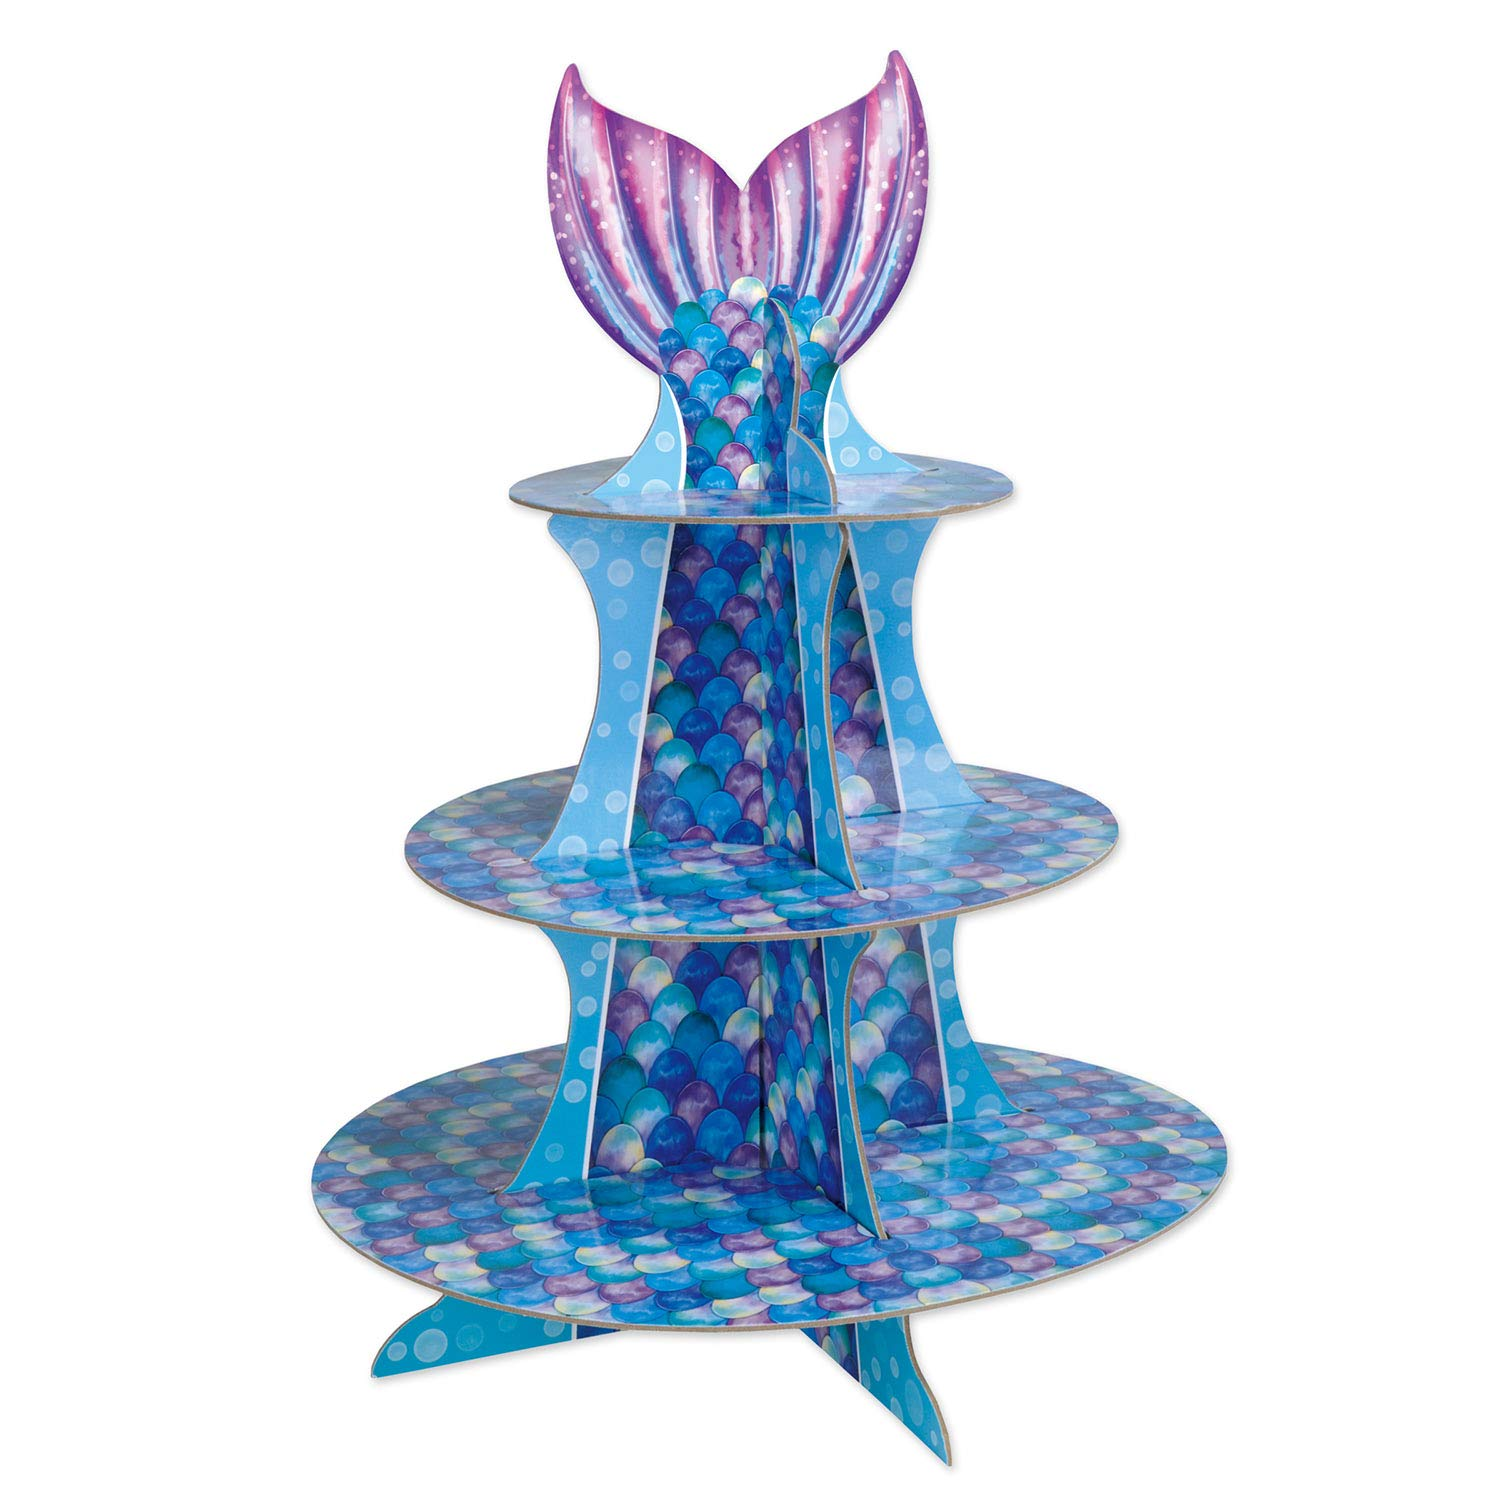 16 Inches Tall 3-Tier Cardboard Mermaid Cupcake & Dessert Stand Server | Ideal for Mermaid Themed Party Server, Tableware & Decorations